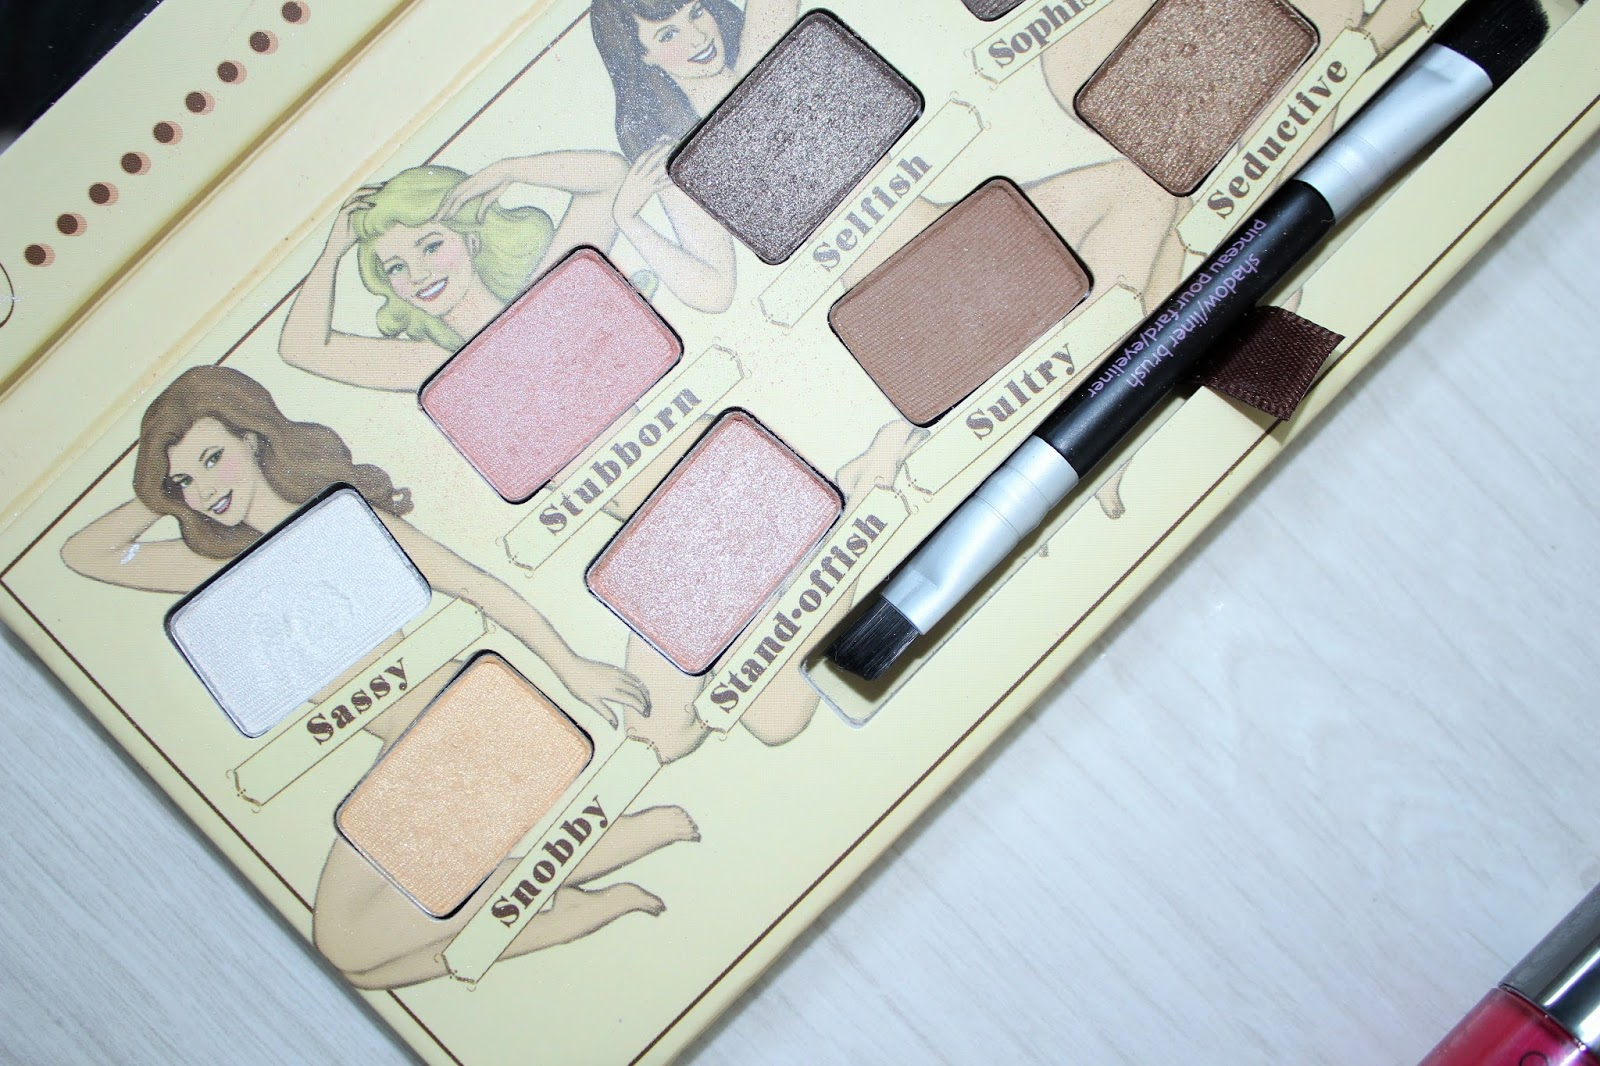 Sunsets and Raspberry Kisses 4 - theBalm NUDE'tude eyeshadow palette